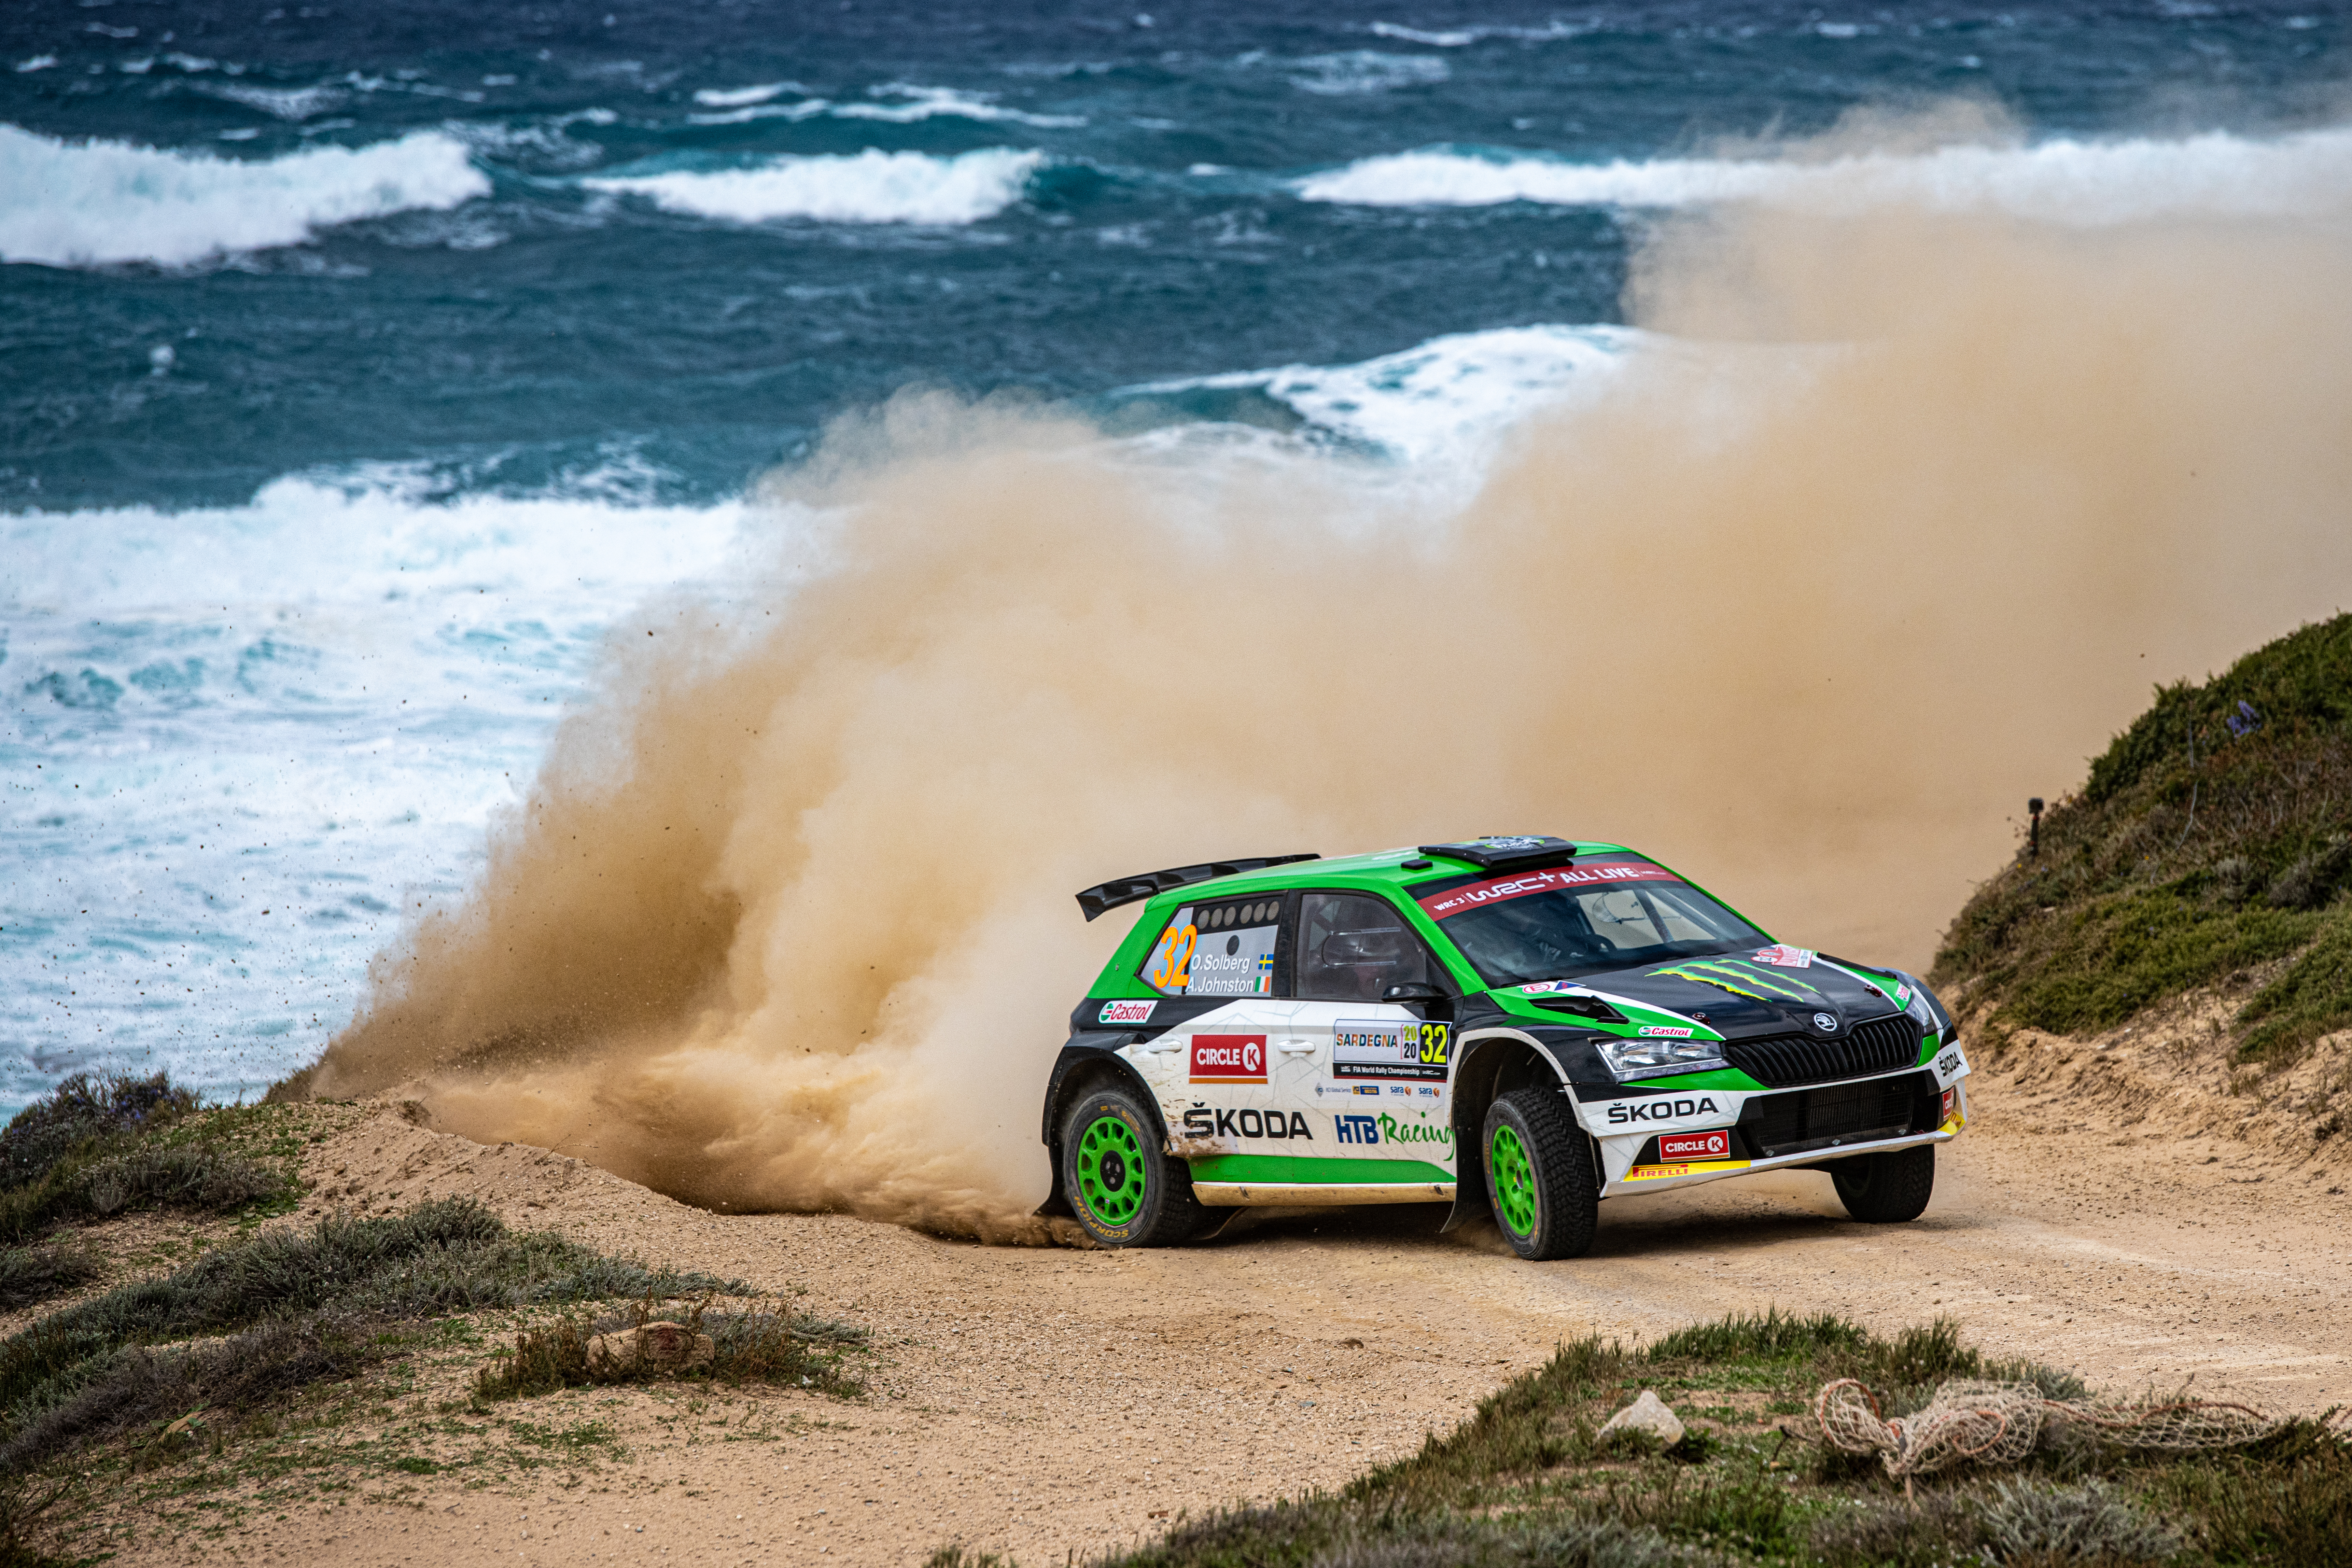 Rally Italia Sardegna: SKODA privateer Pontus Tidemand wins WRC2 and extends overall lead - Image 3